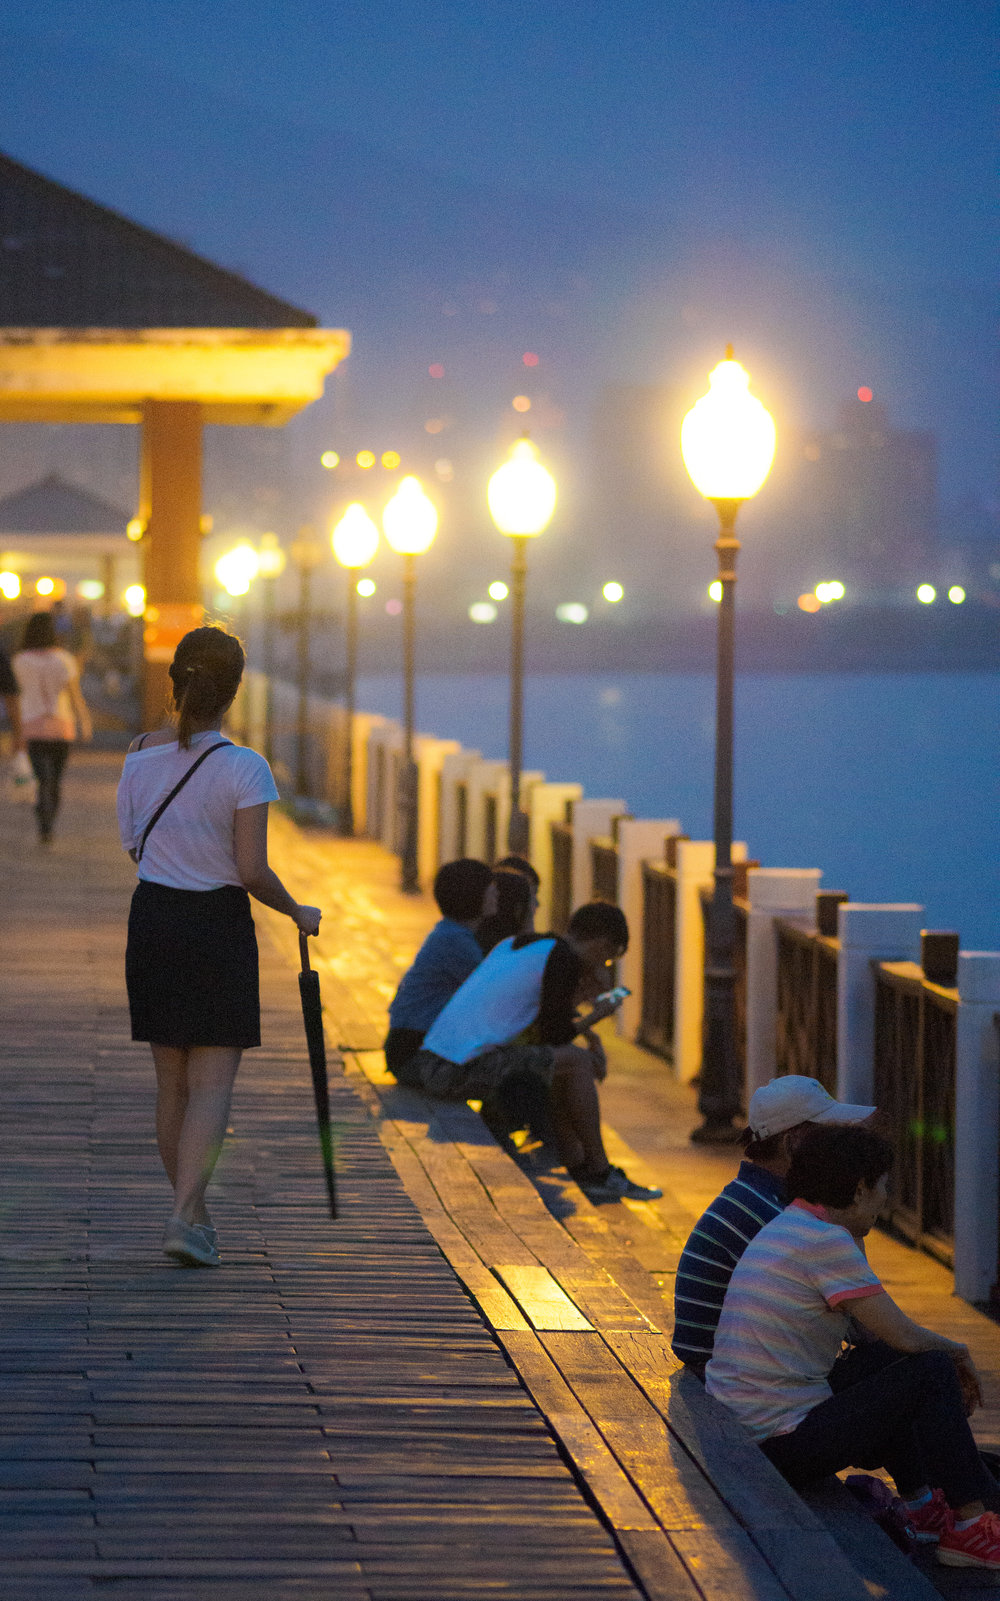 the wharf on a summer evening. f1.8, ISO 3200, 1/30, 150mm